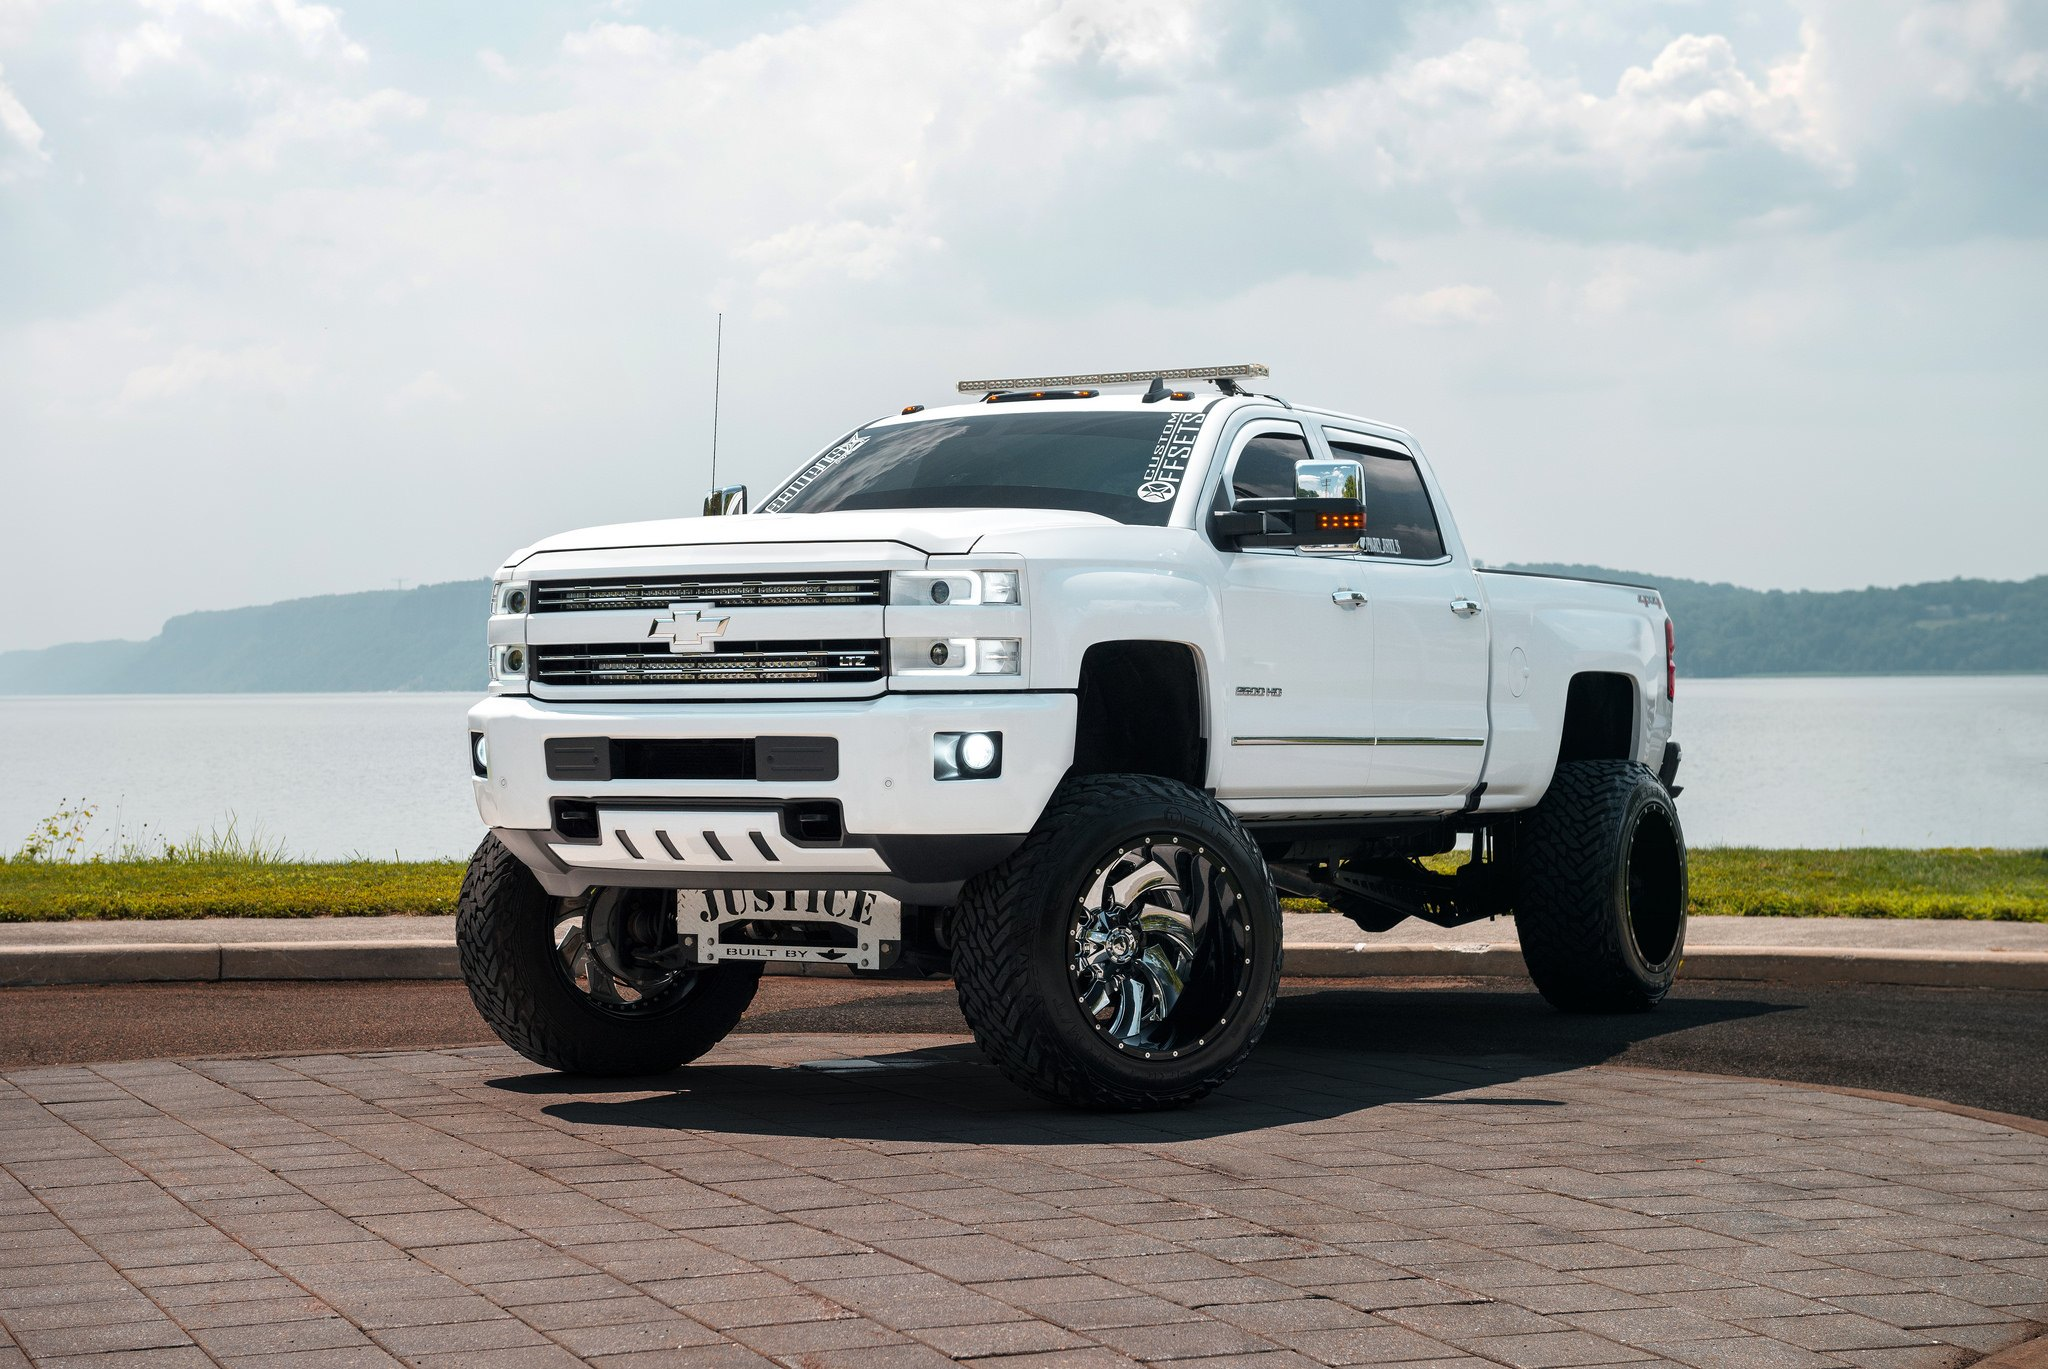 White Lifted Chevy Silverado 2500 Hd Photo By Fuel Off Road